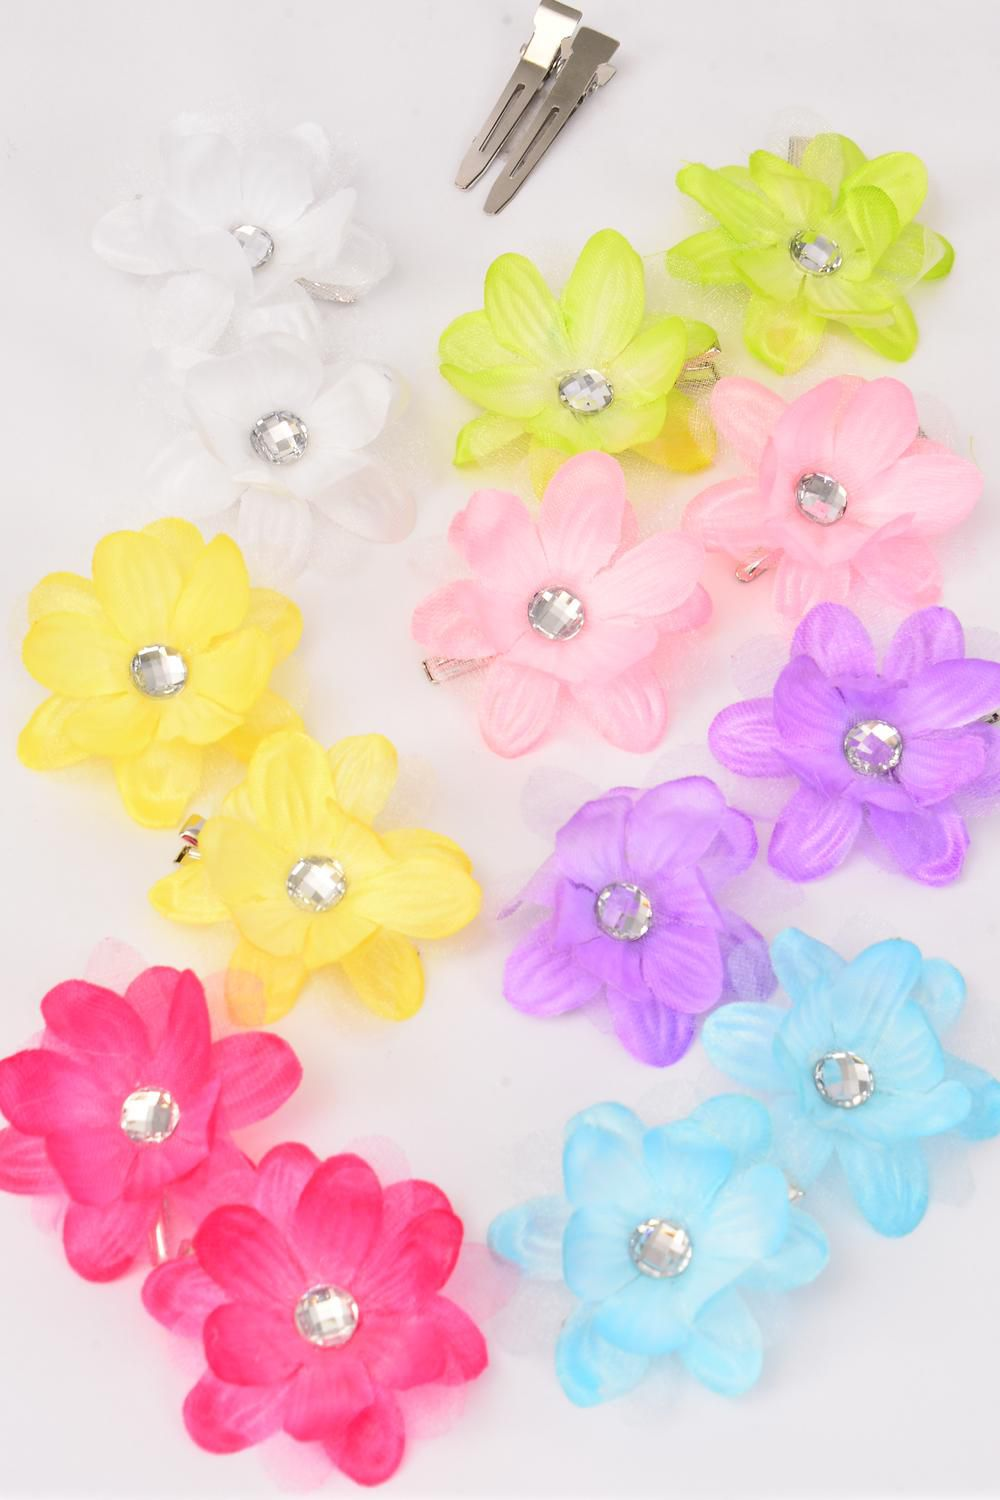 "Flowers 24 pcs Alligator Clip 3 Layered Flowers Pastel/DZ **Pastel** Flower Size-2.5"" Wide,2 Hot Pink,2 Lavender,2 Blue,2 White,2 Pink,1 Lime,1 Yellow,8 Color Asst"